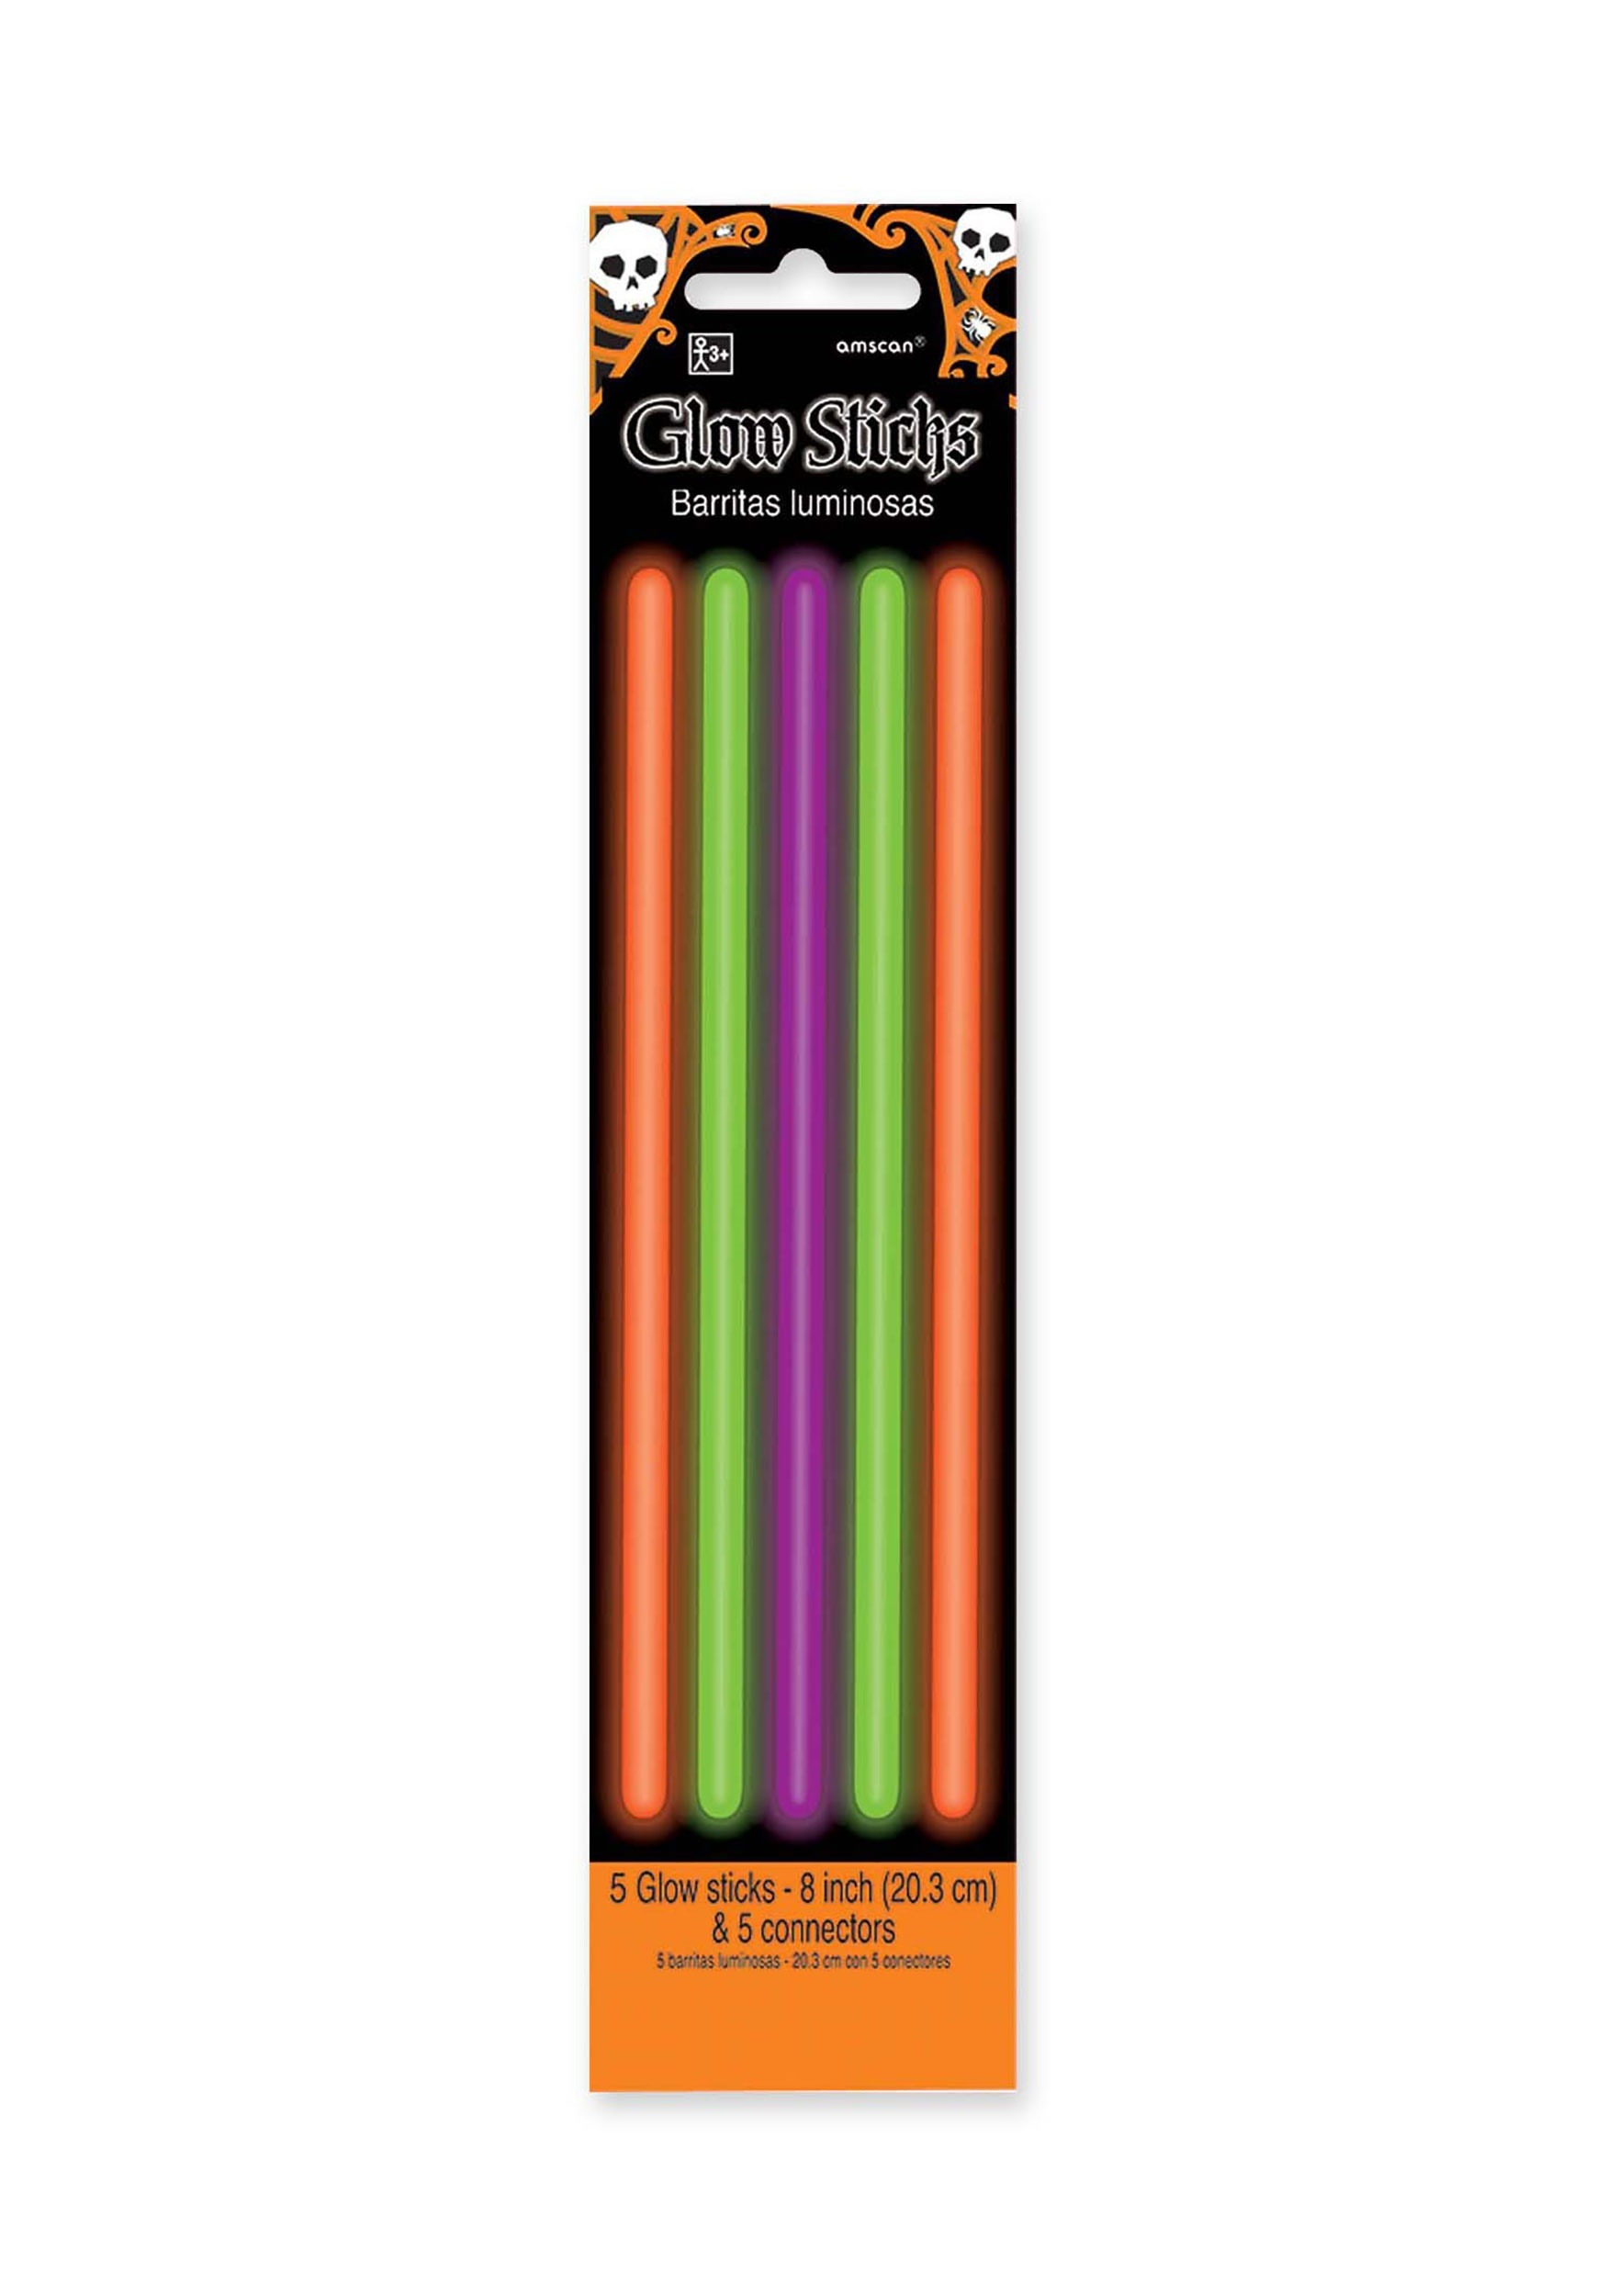 8_Inch_Glow_Sticks_5_per_pack